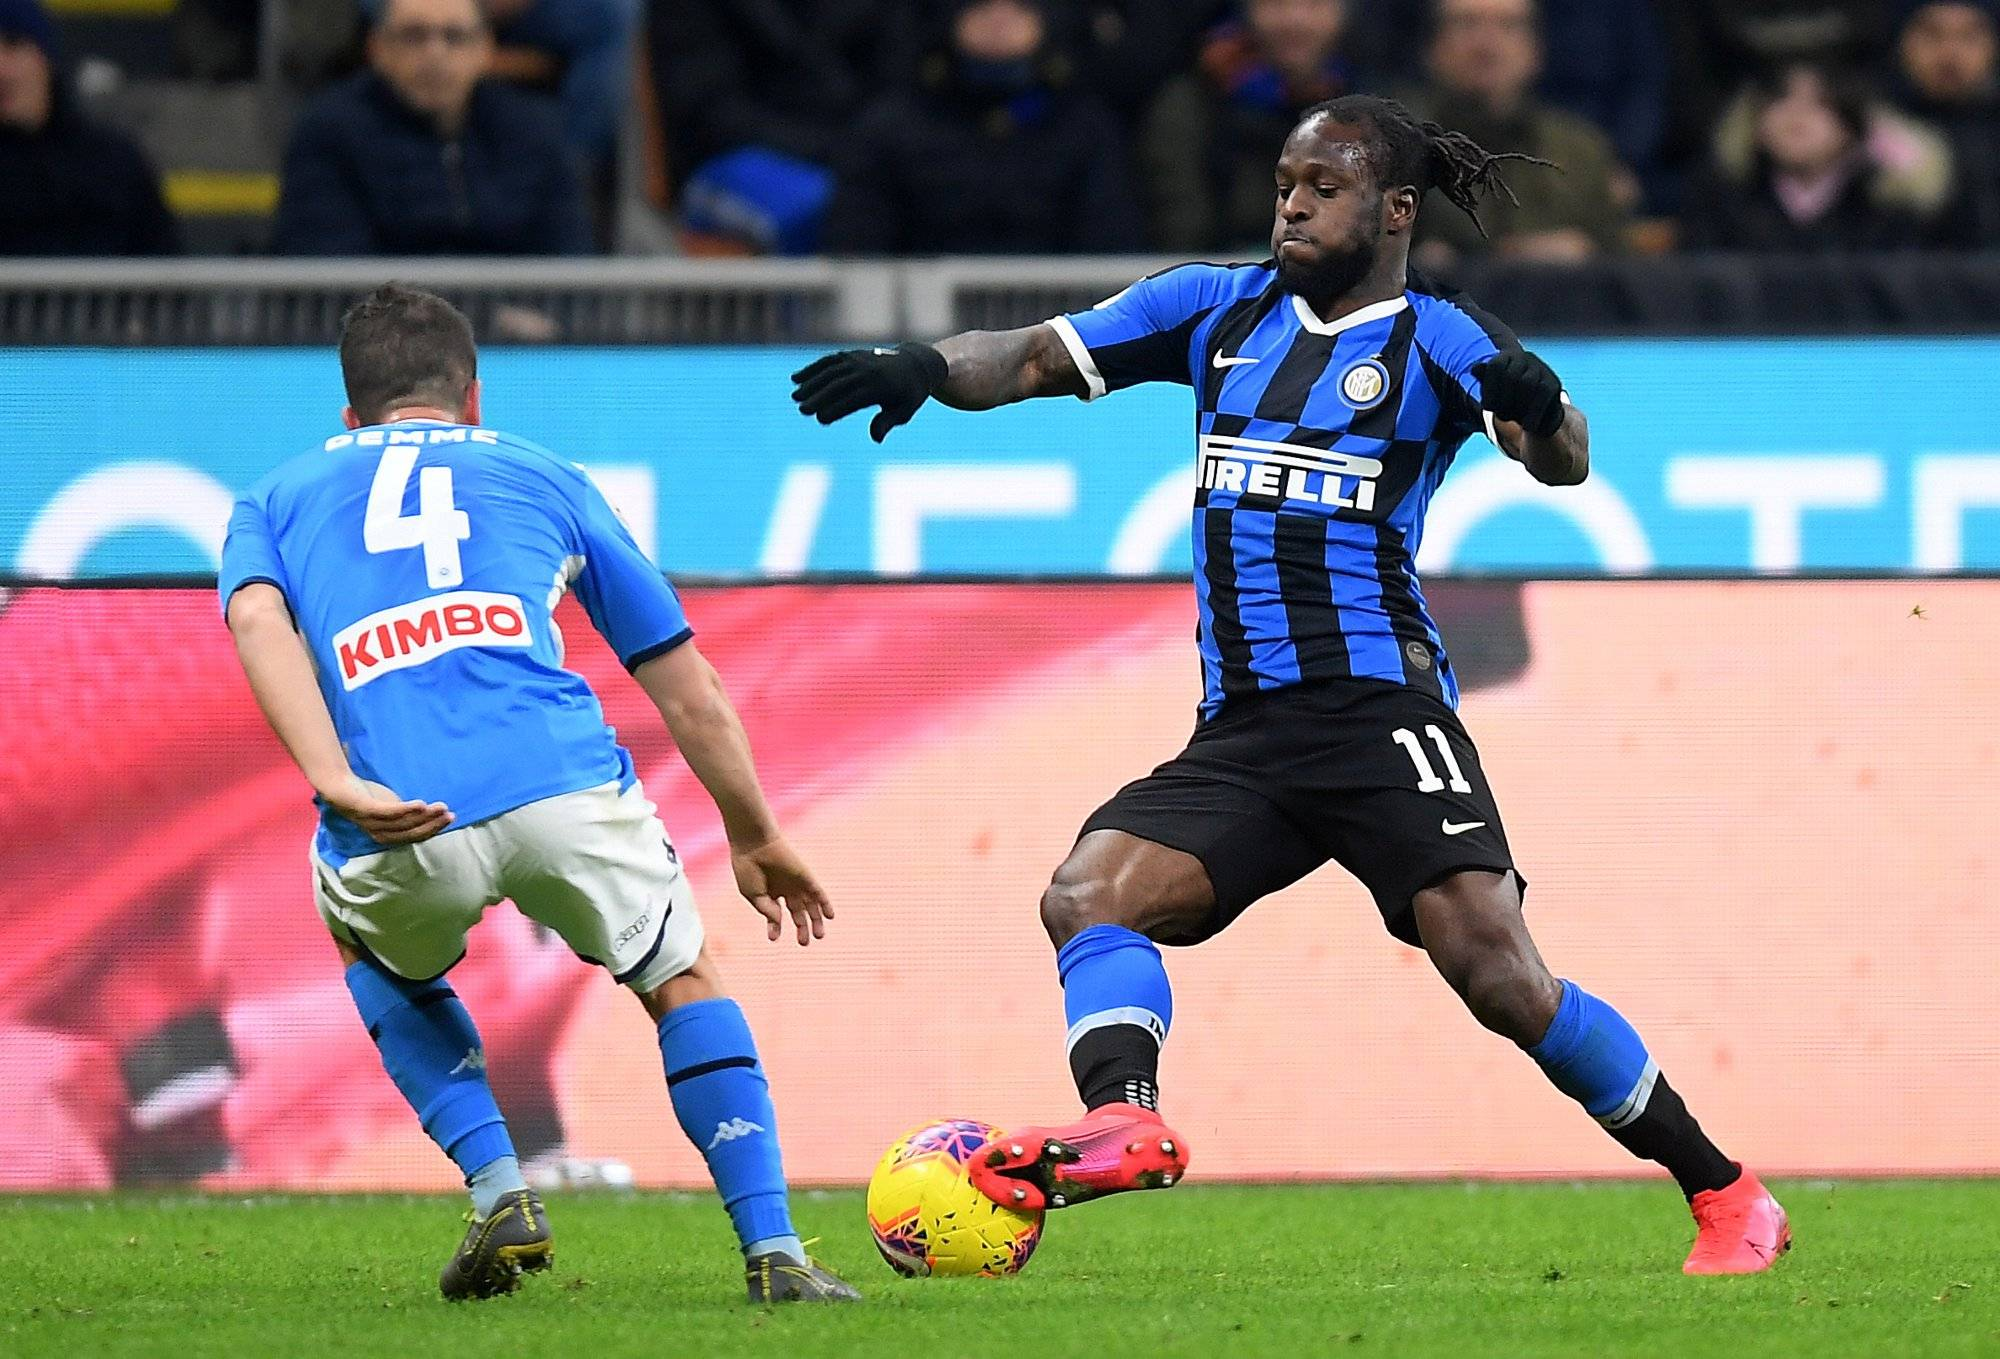 Coppa Italia: Moses To Miss Inter Milan's Trip To Napoli Due To Injury